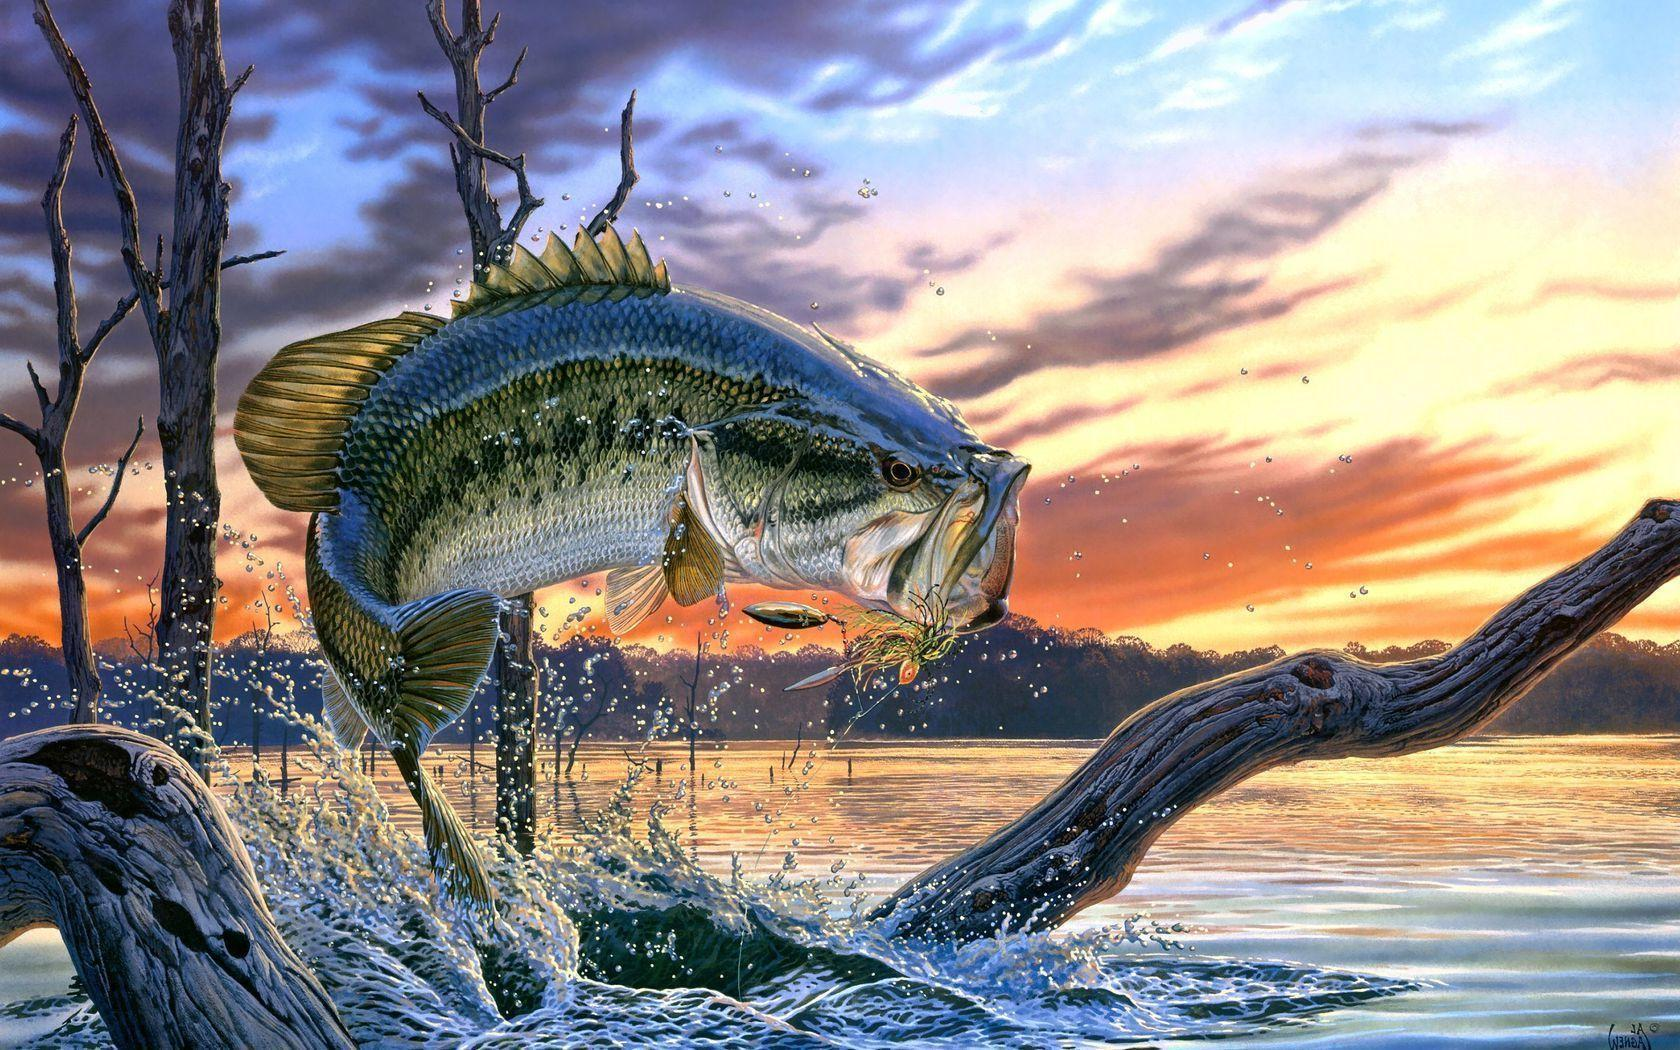 bass boat fishing wallpaper backgrounds - photo #4